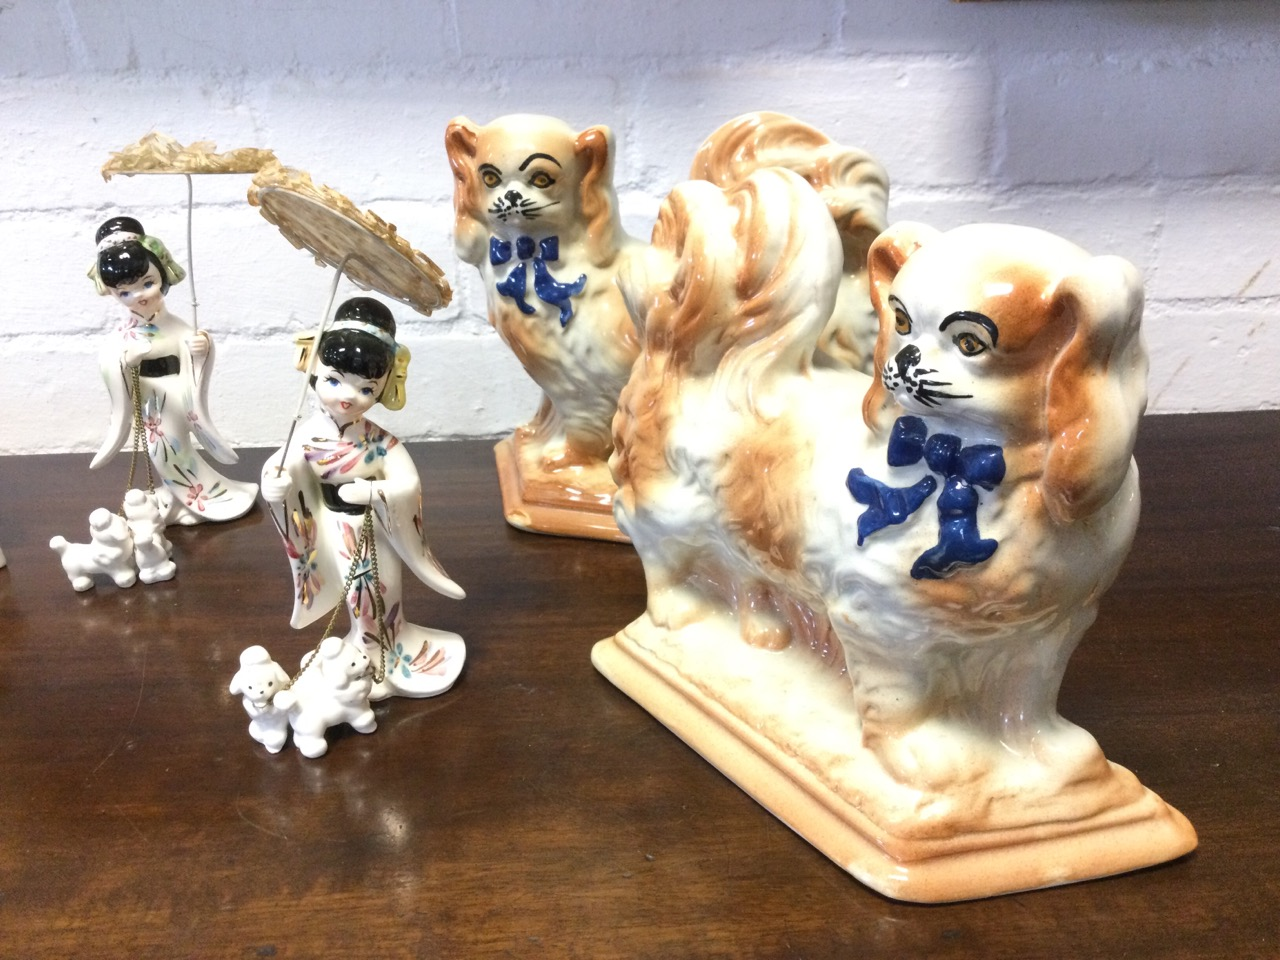 Four pairs - Japanese girls with parasols & dogs, Royal Art Pottery spaniels by baskets, boy & - Image 3 of 3